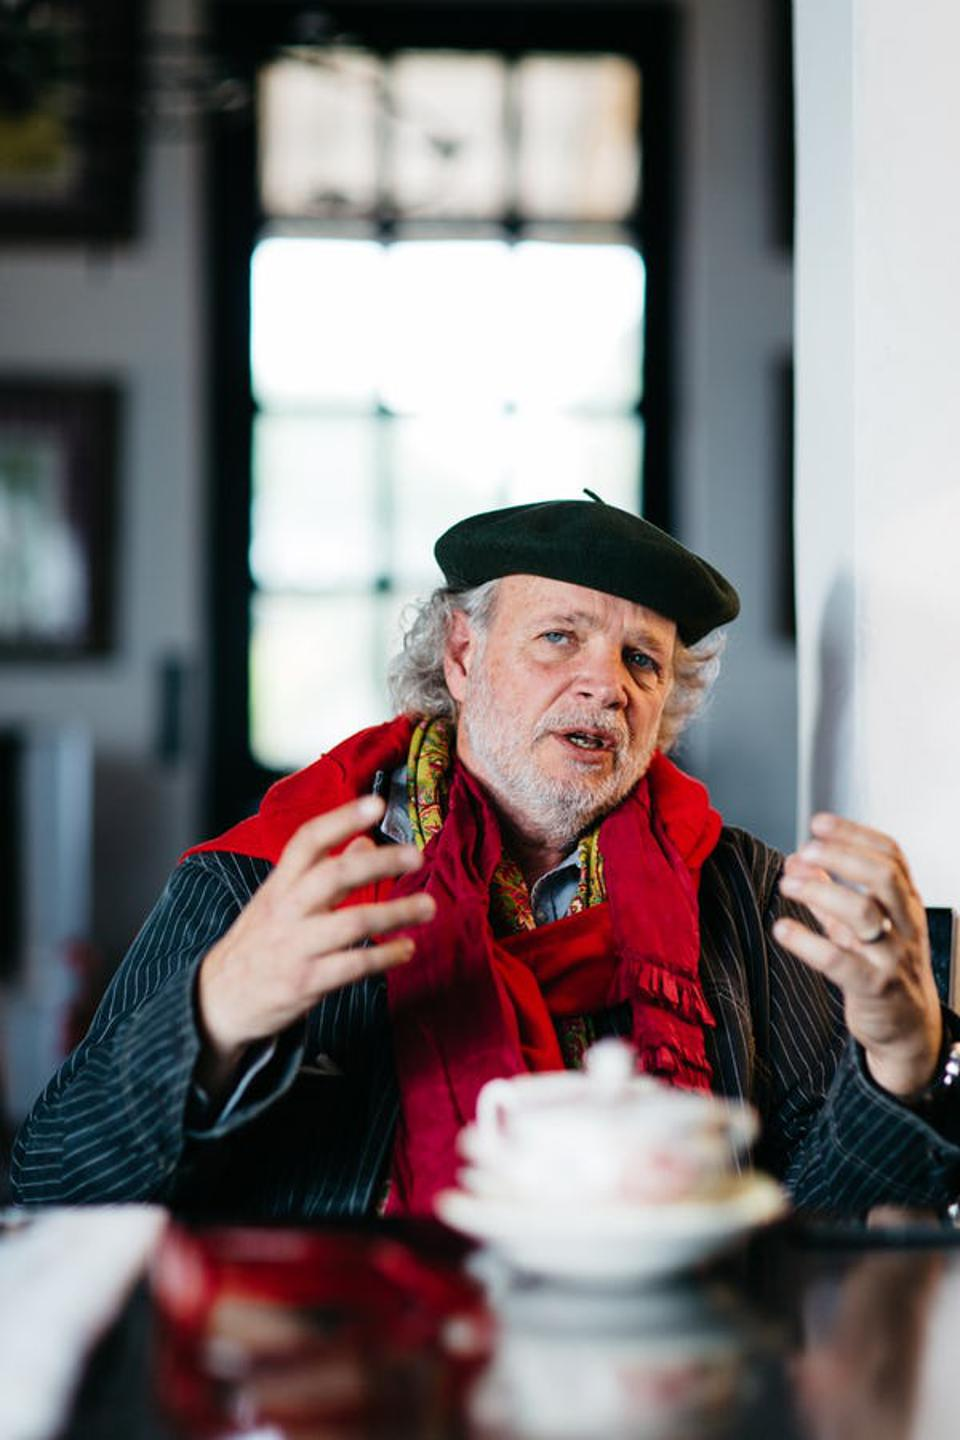 Satopia Travel is offering a hosted culinary experience with Francis Mallmann